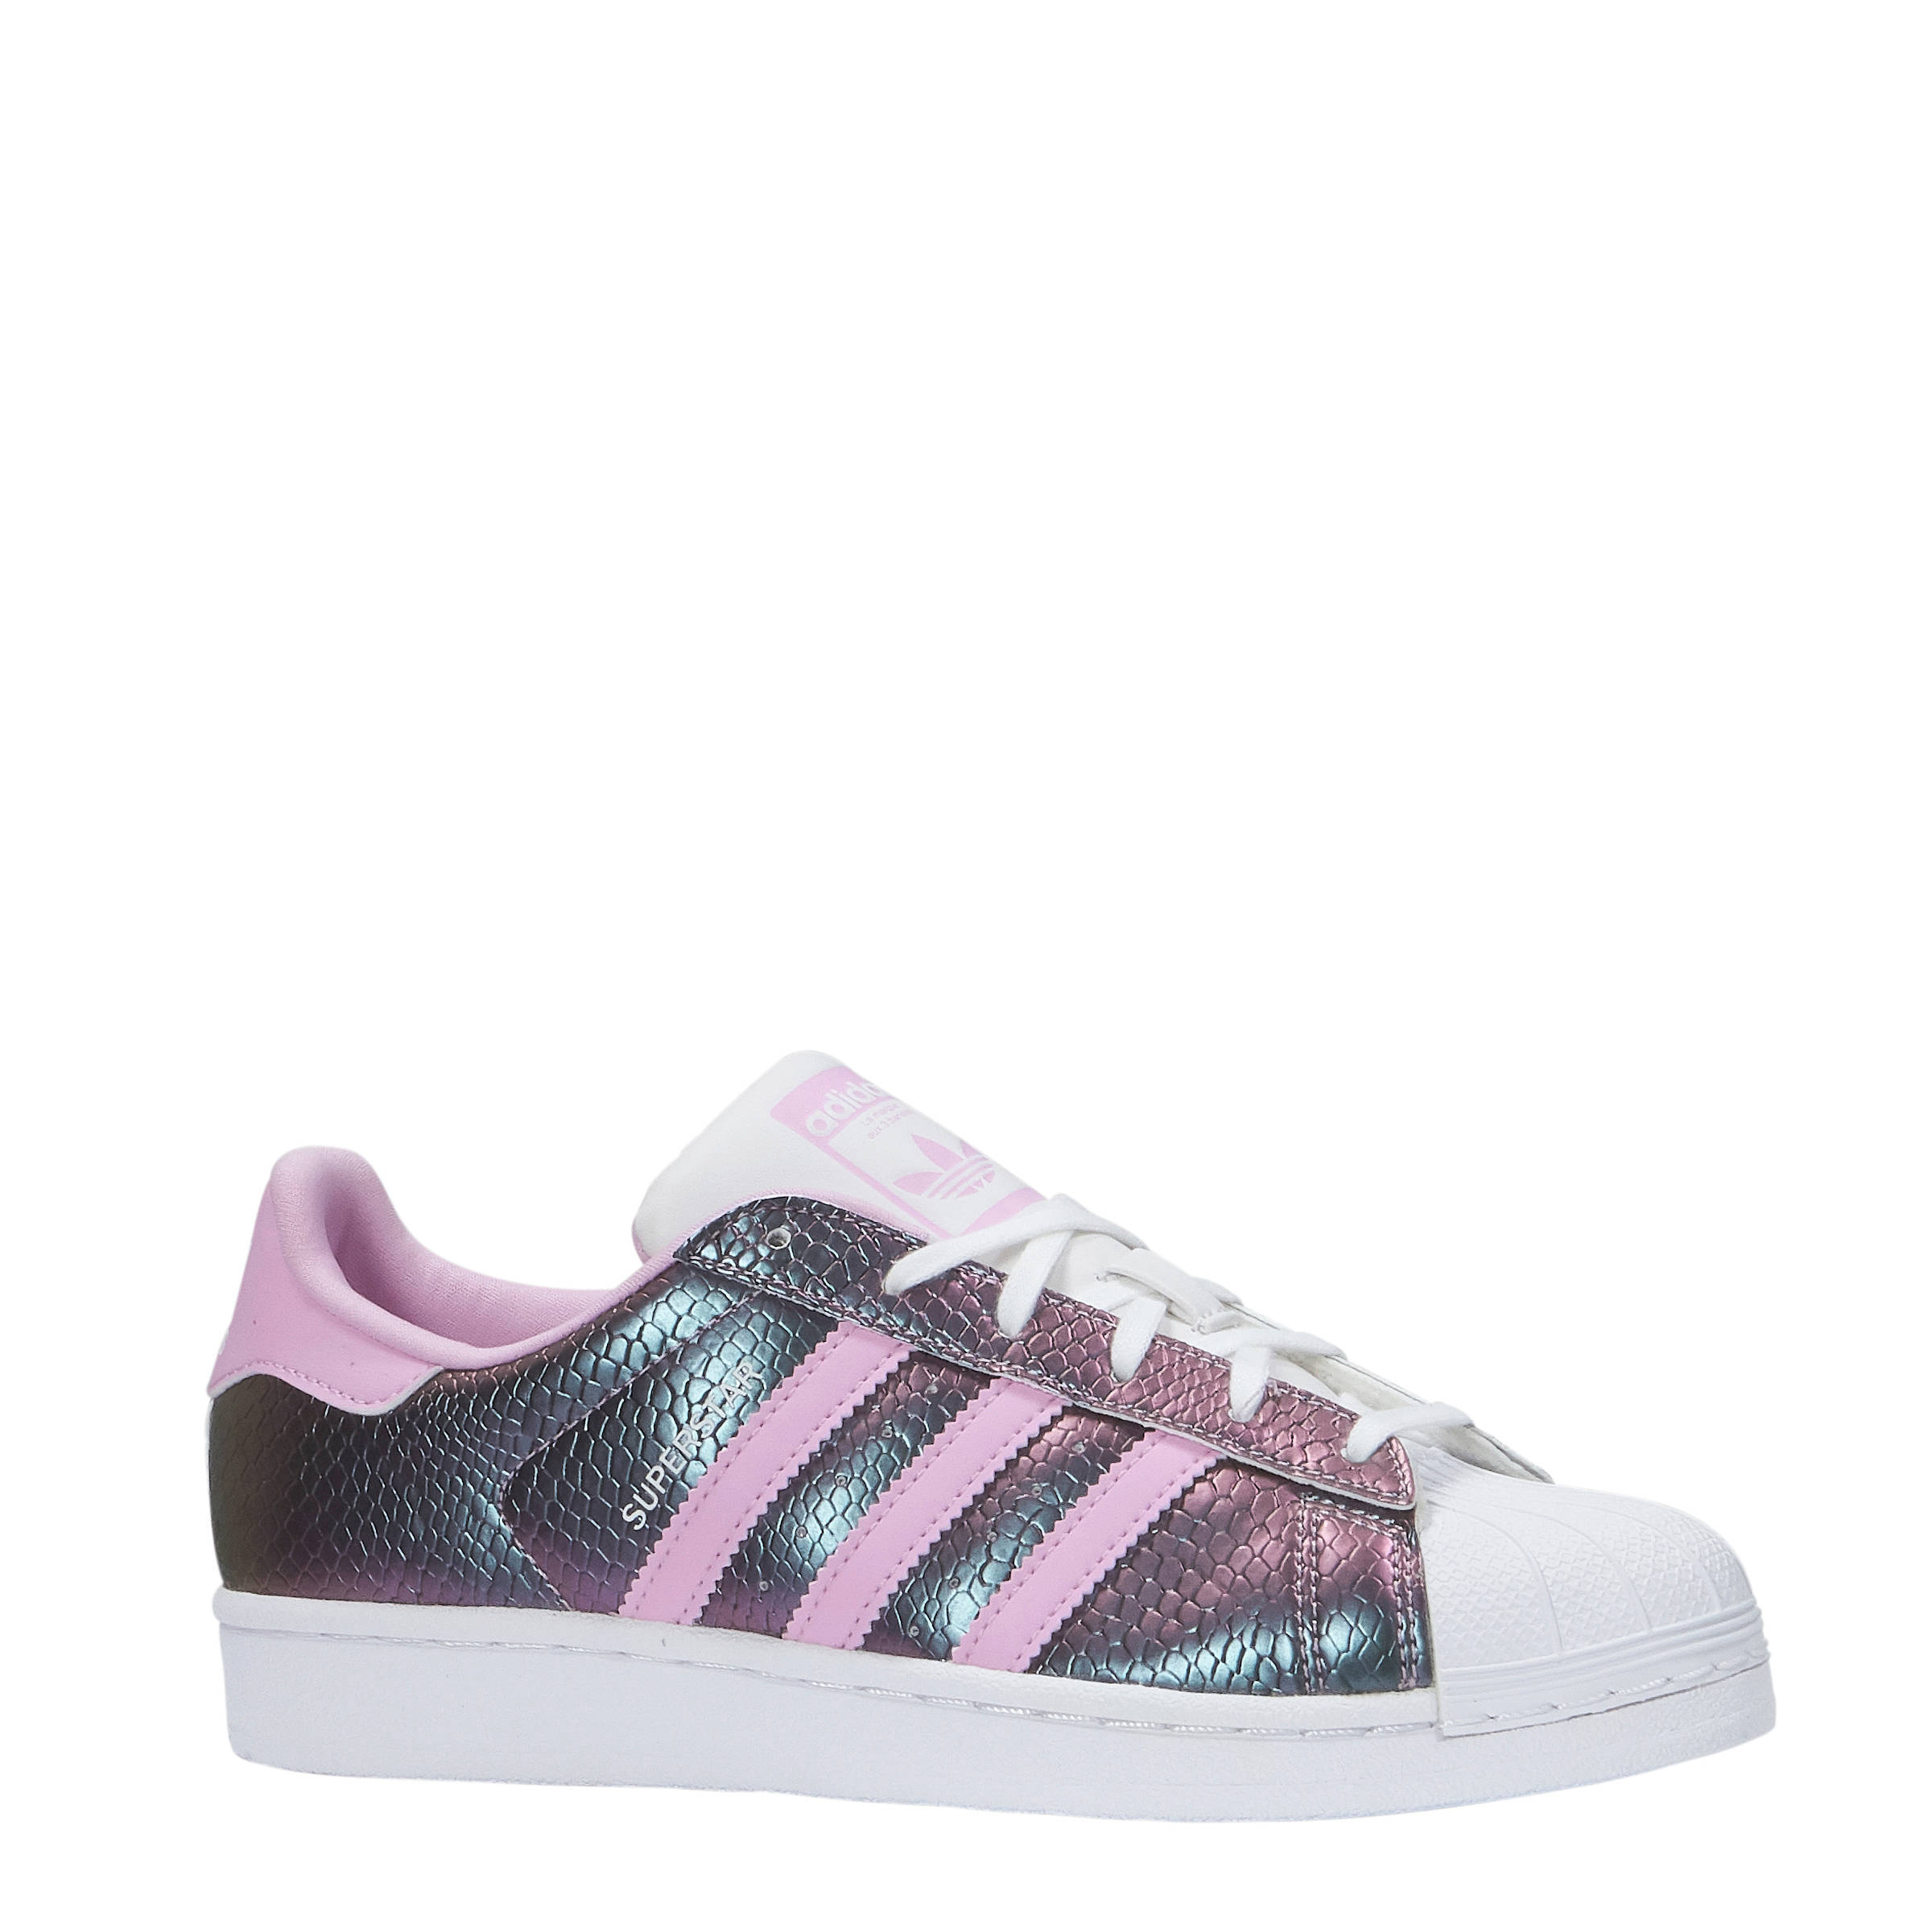 adidas superstar wit paars